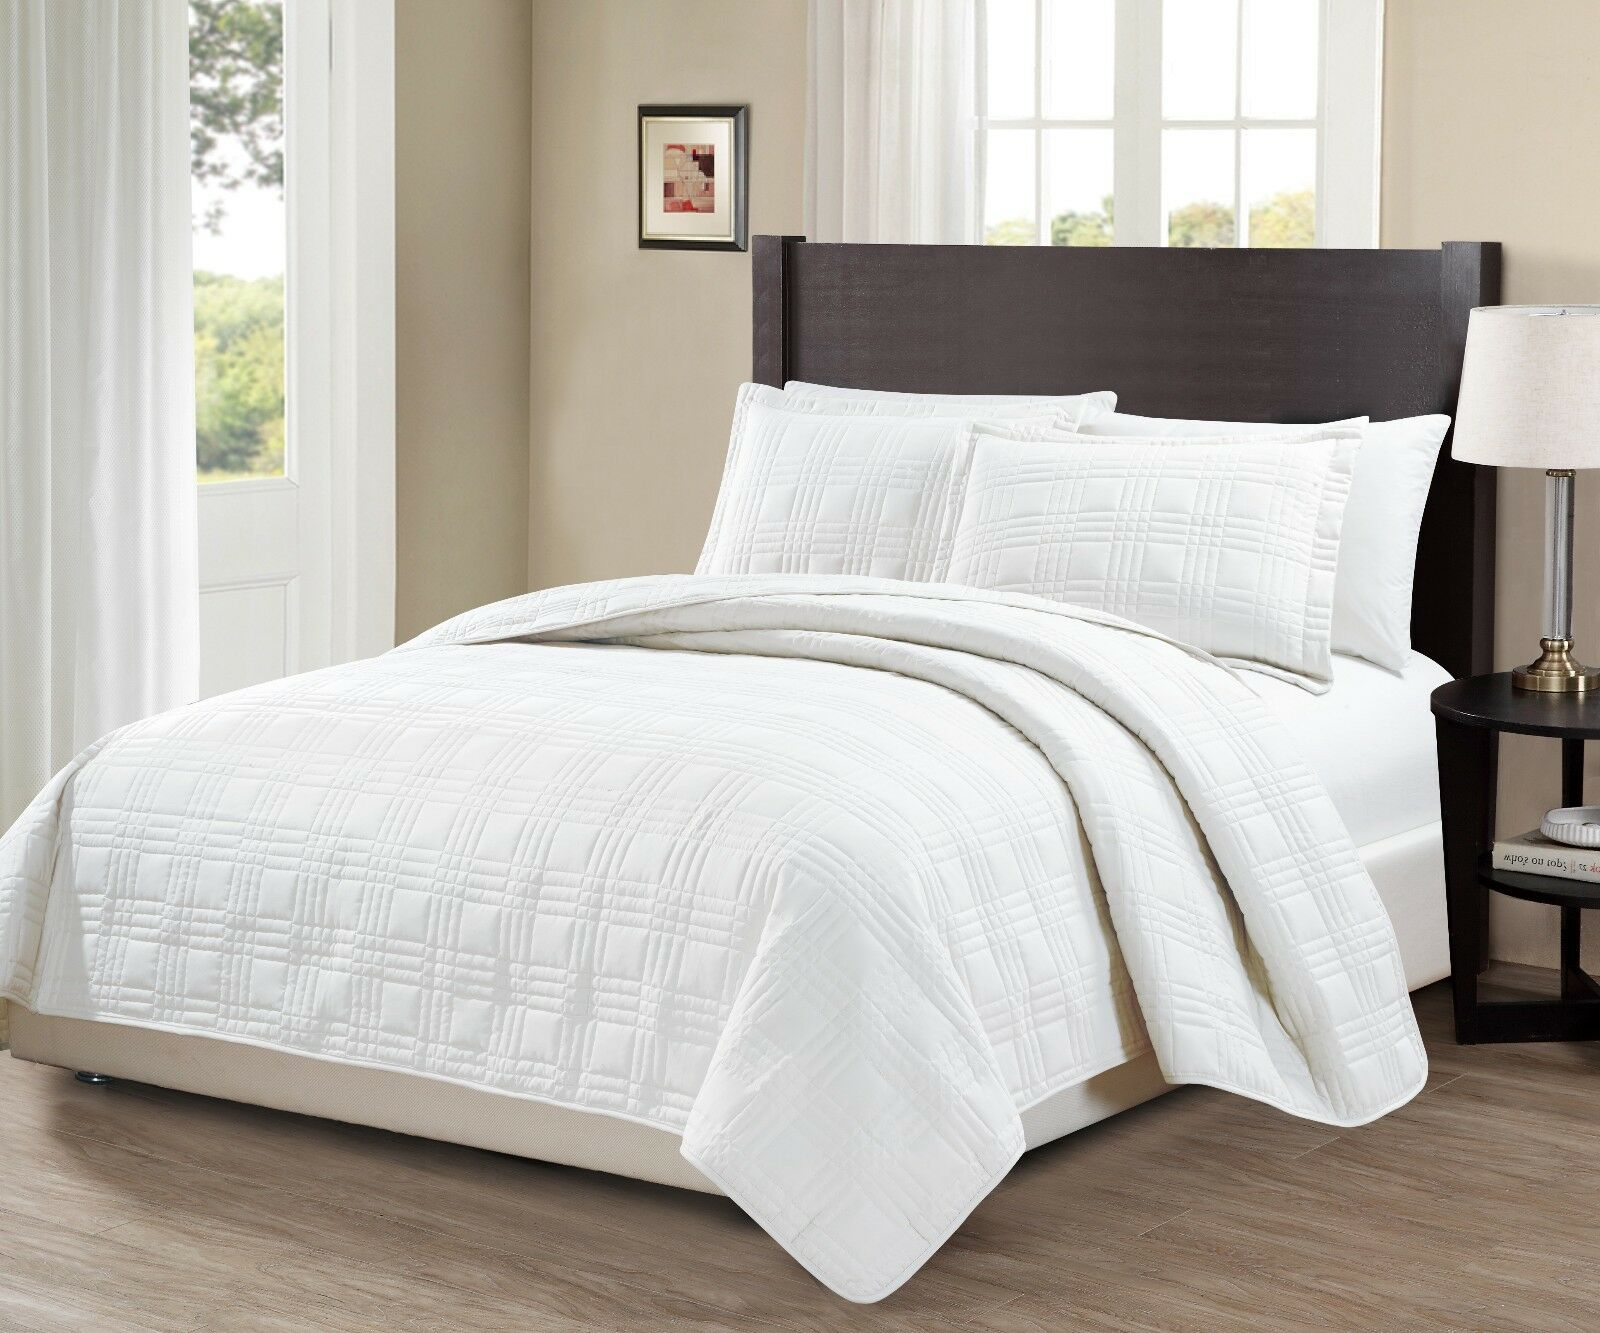 Fancy Linen 3pc Oversize Geo Quilted Embroidery Solid White Bedspread New